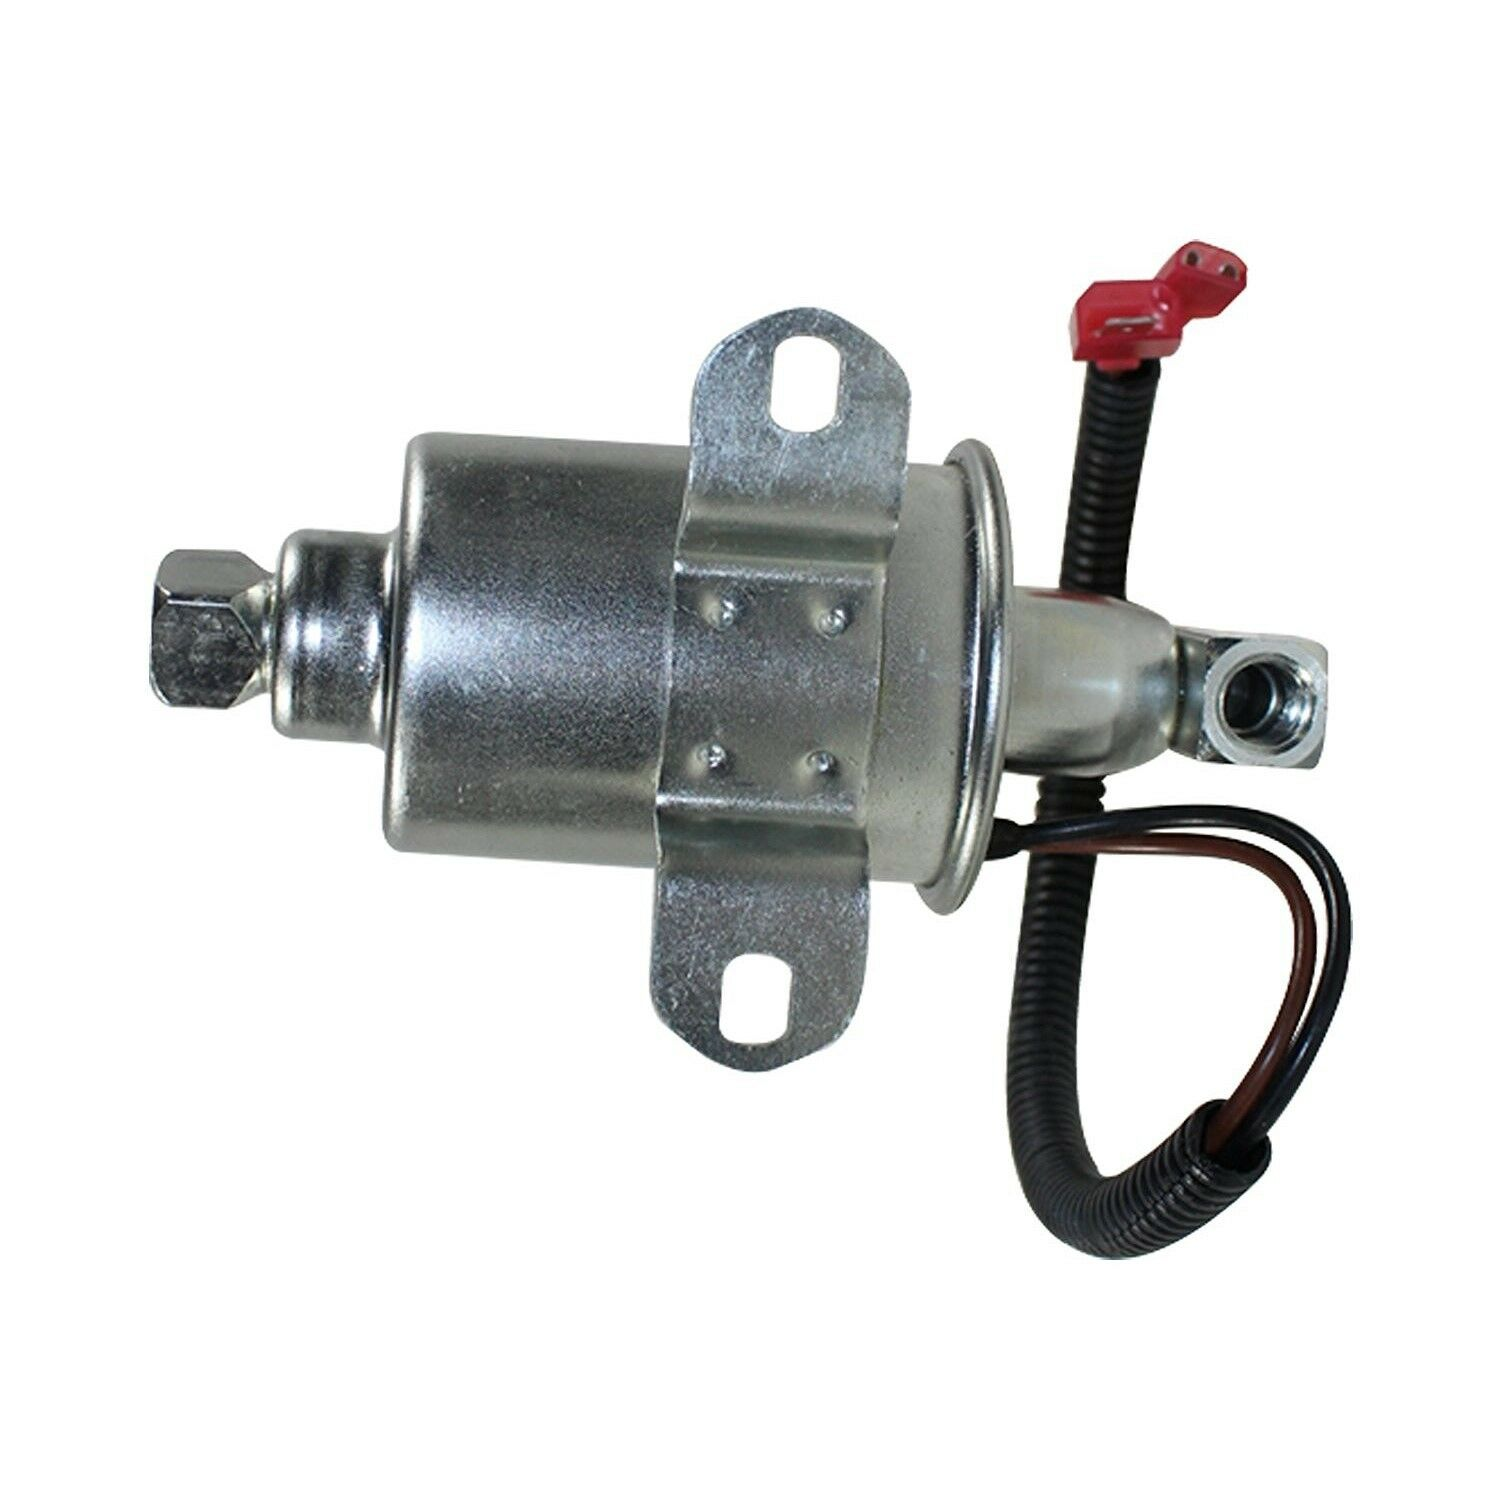 Onan Marquis Generator Fuel Pump Fits 149 2620 Cummins A029f887 Replacement Small Circuit Board With Fuse And Spade Connection 93865 A047n929